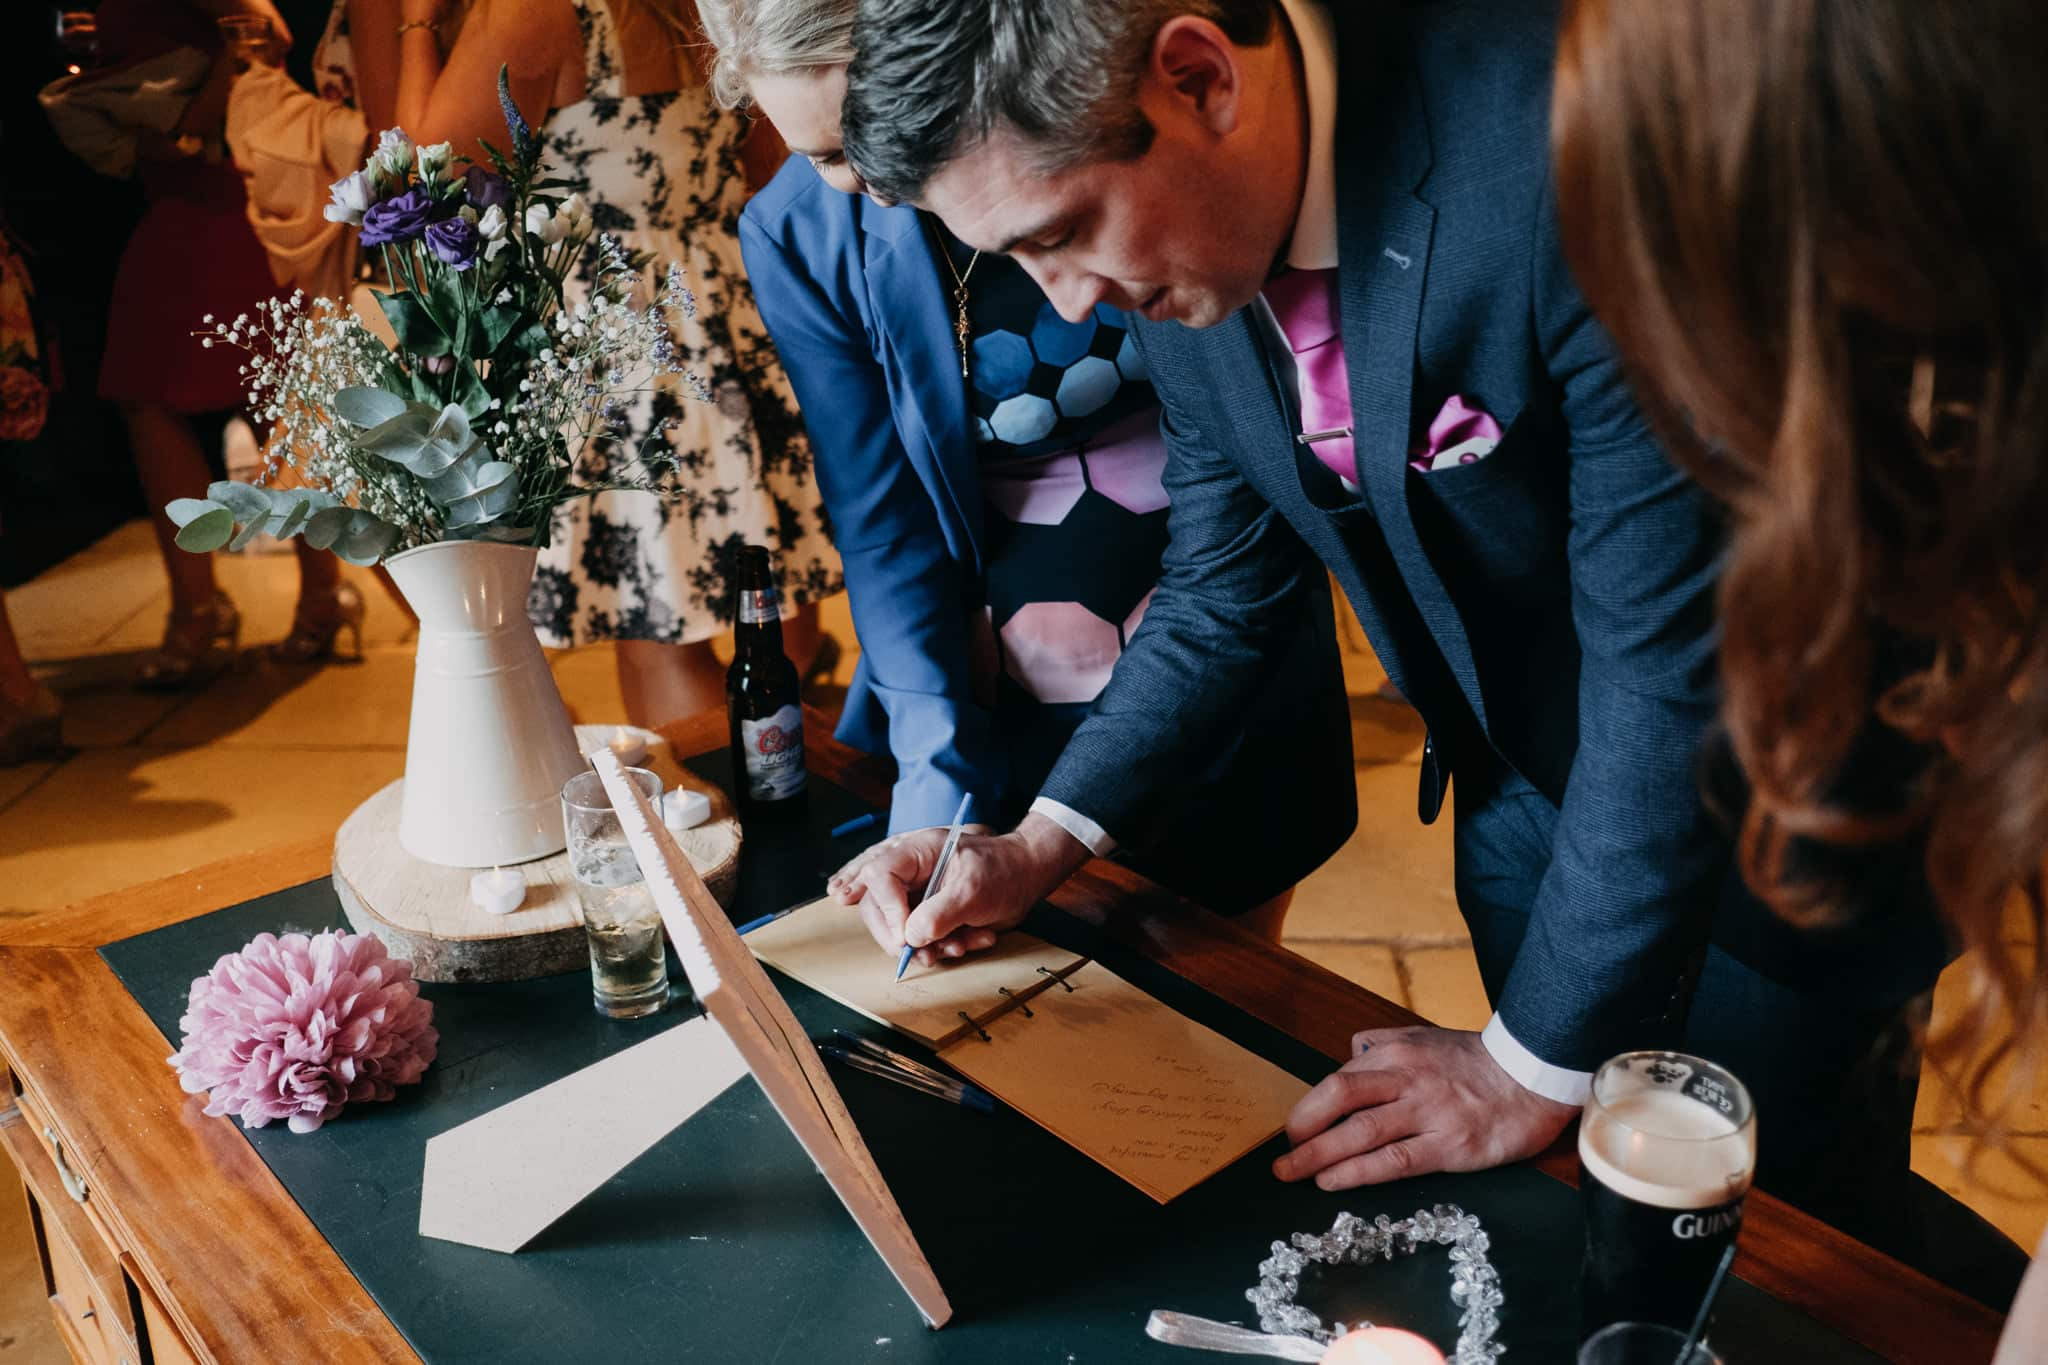 wedding guests sign the guest book